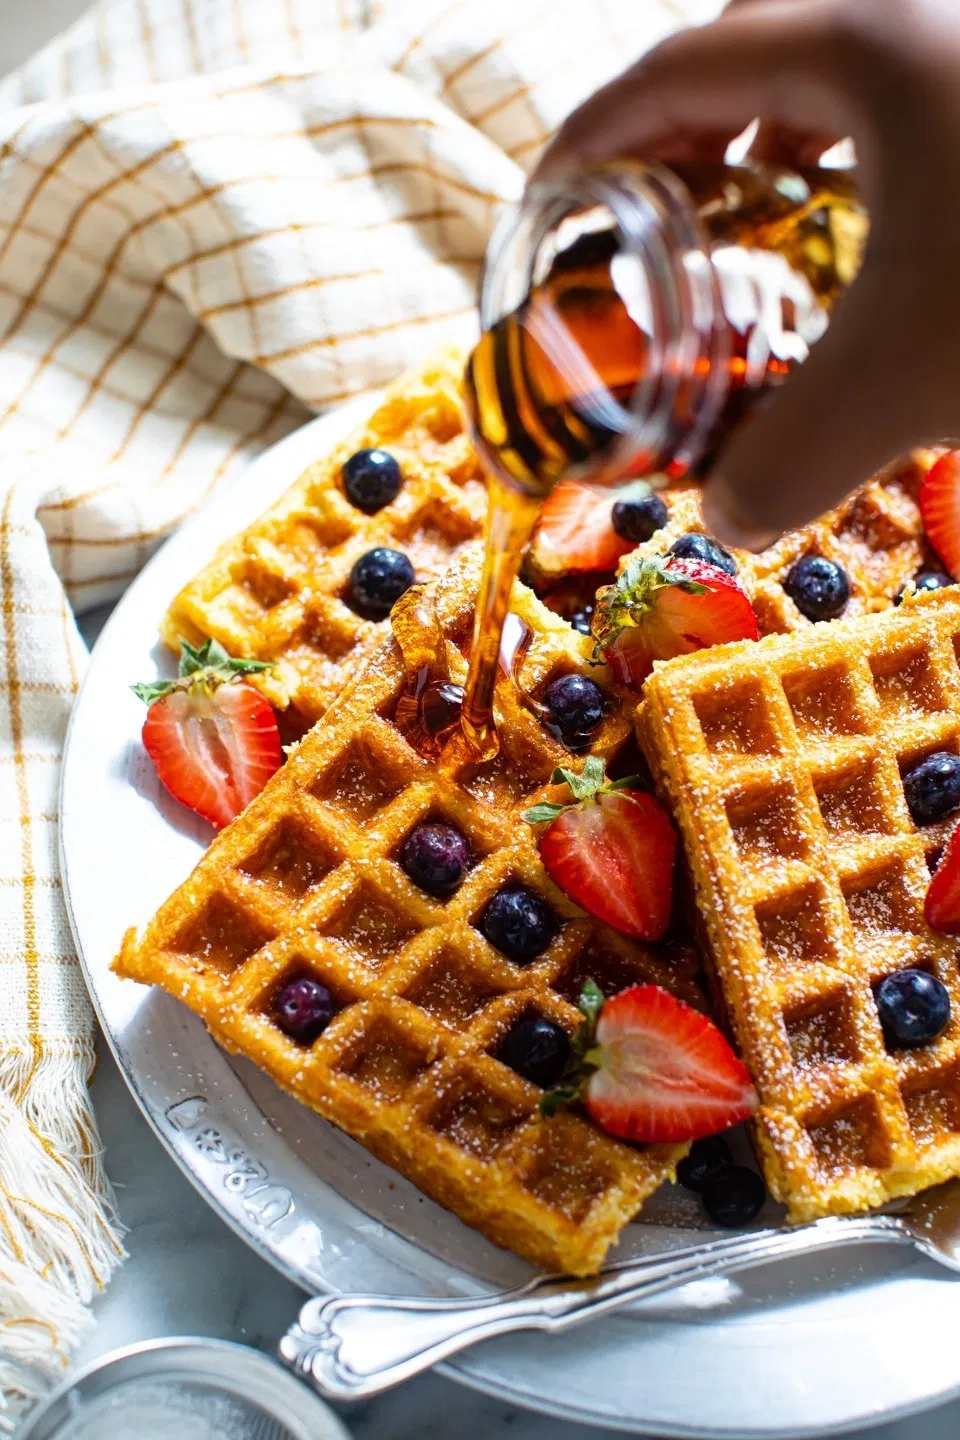 Homemade Buttermilk Waffles Recipe Butter Be Ready Recipe In 2020 Buttermilk Waffles Homemade Buttermilk Waffle Ingredients